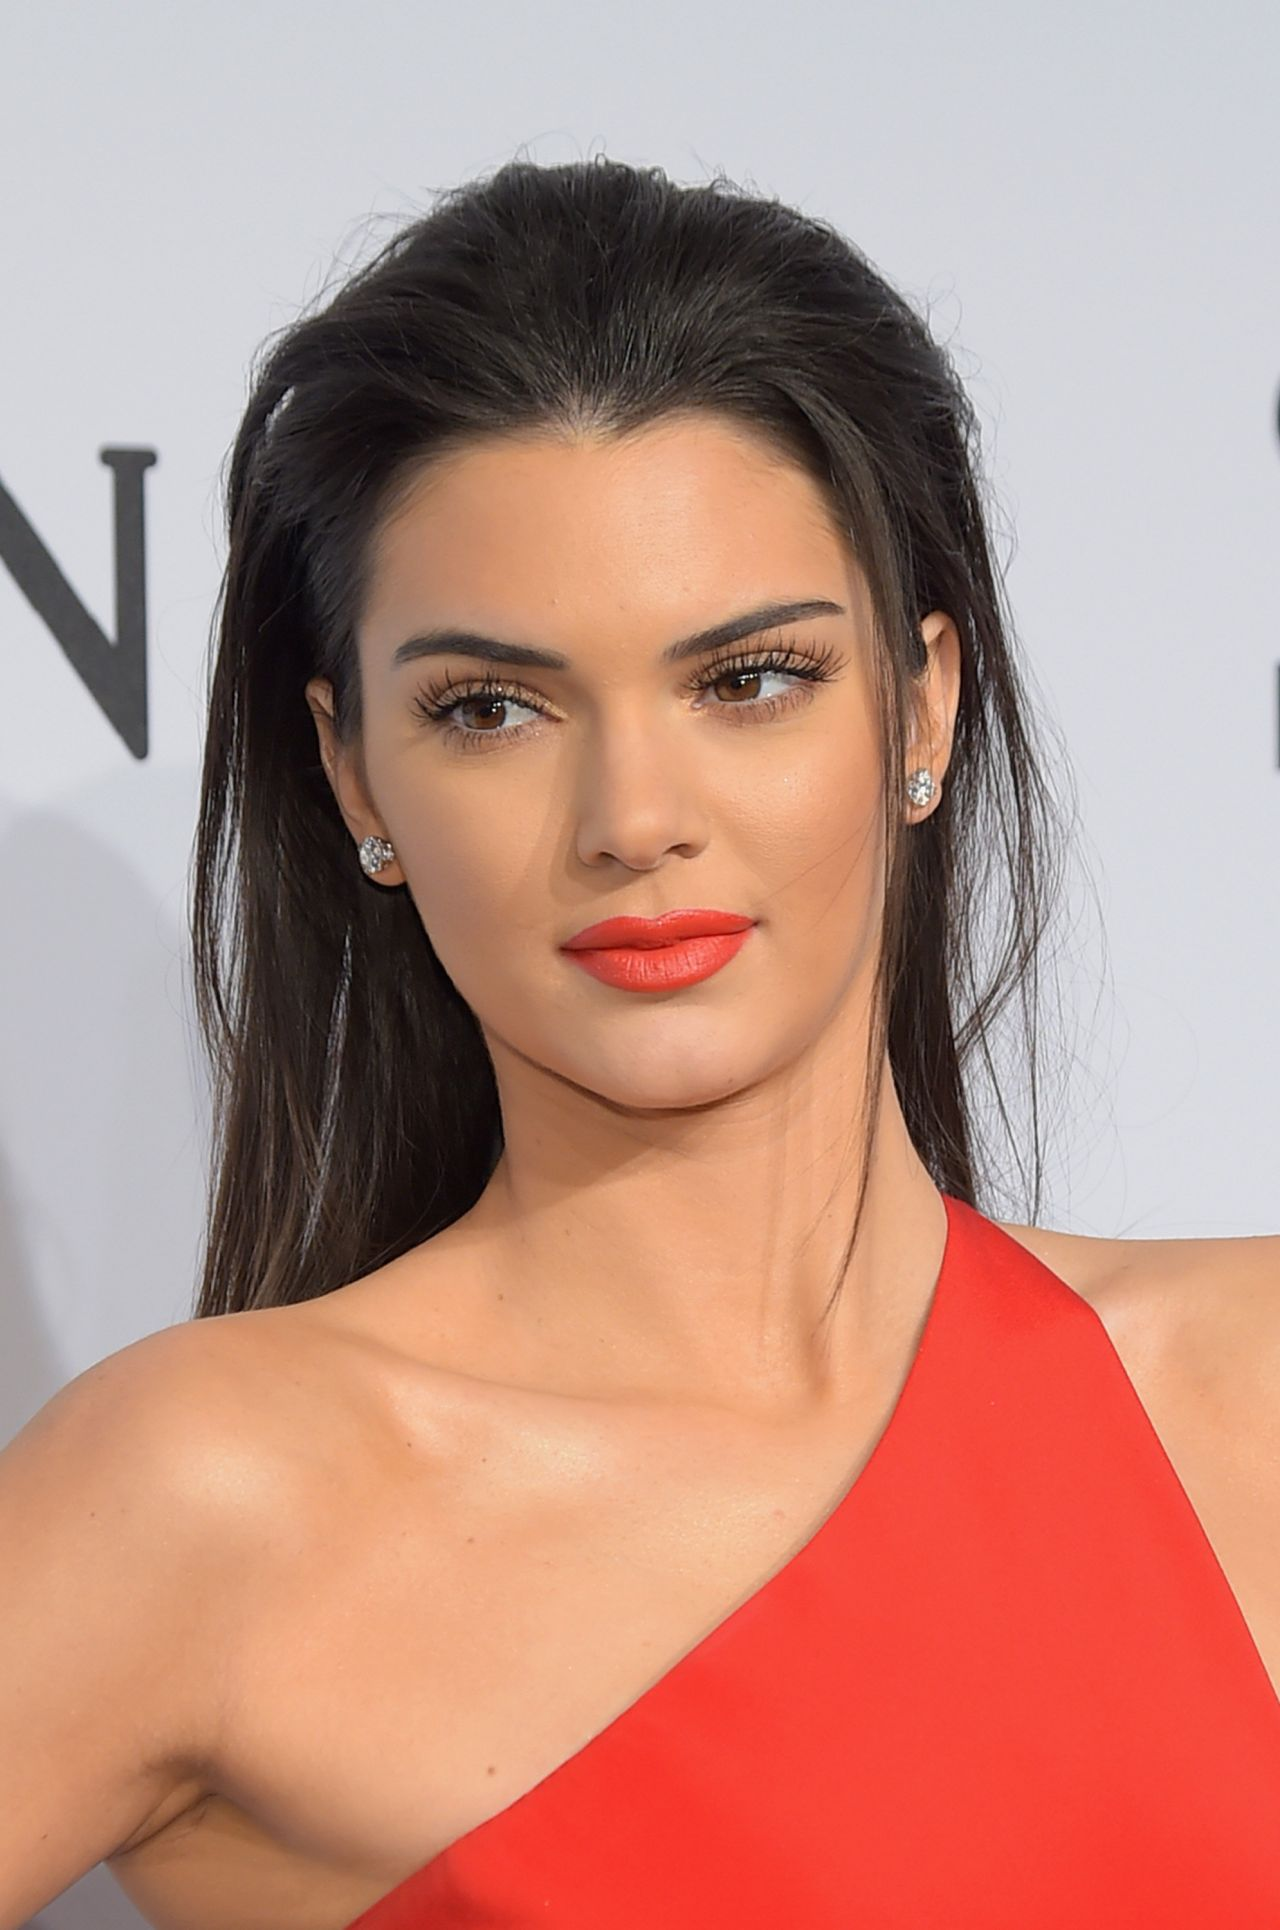 Kendall jenner and Kendall jenner no makeup